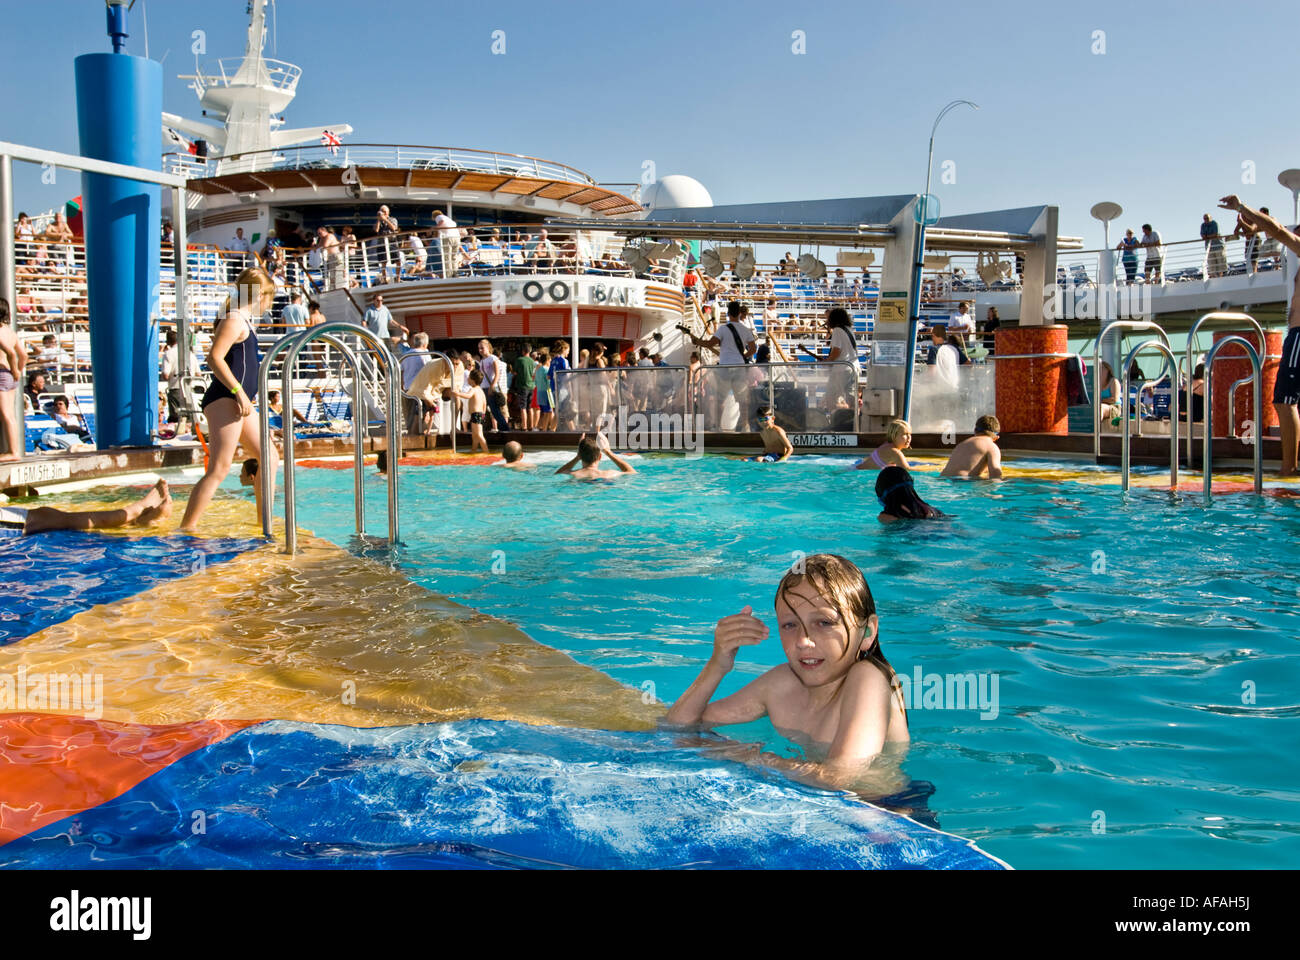 The massive seawater pool area on a cruise liner - Stock Image